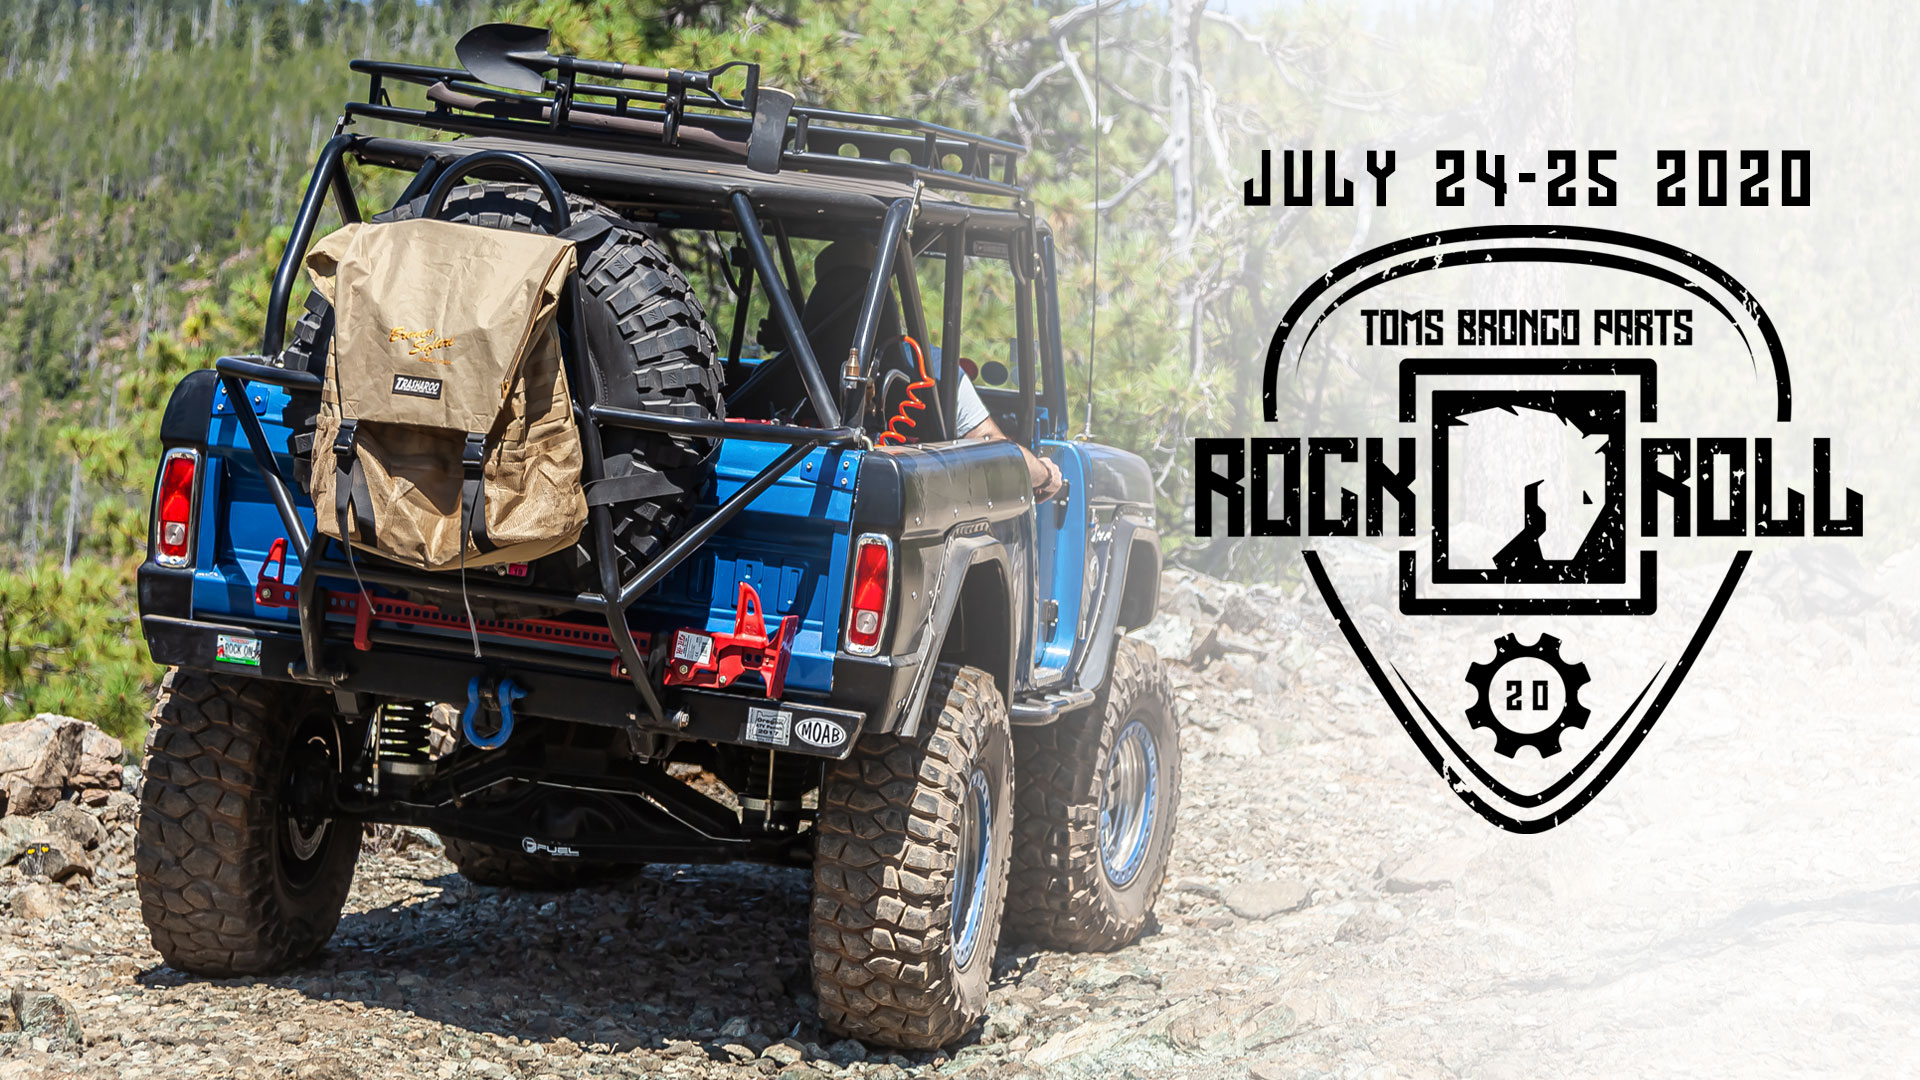 TBP Rock & Roll 2020 - Trail Run, Show & Shine, Wine Cruise July 24-25, 2020